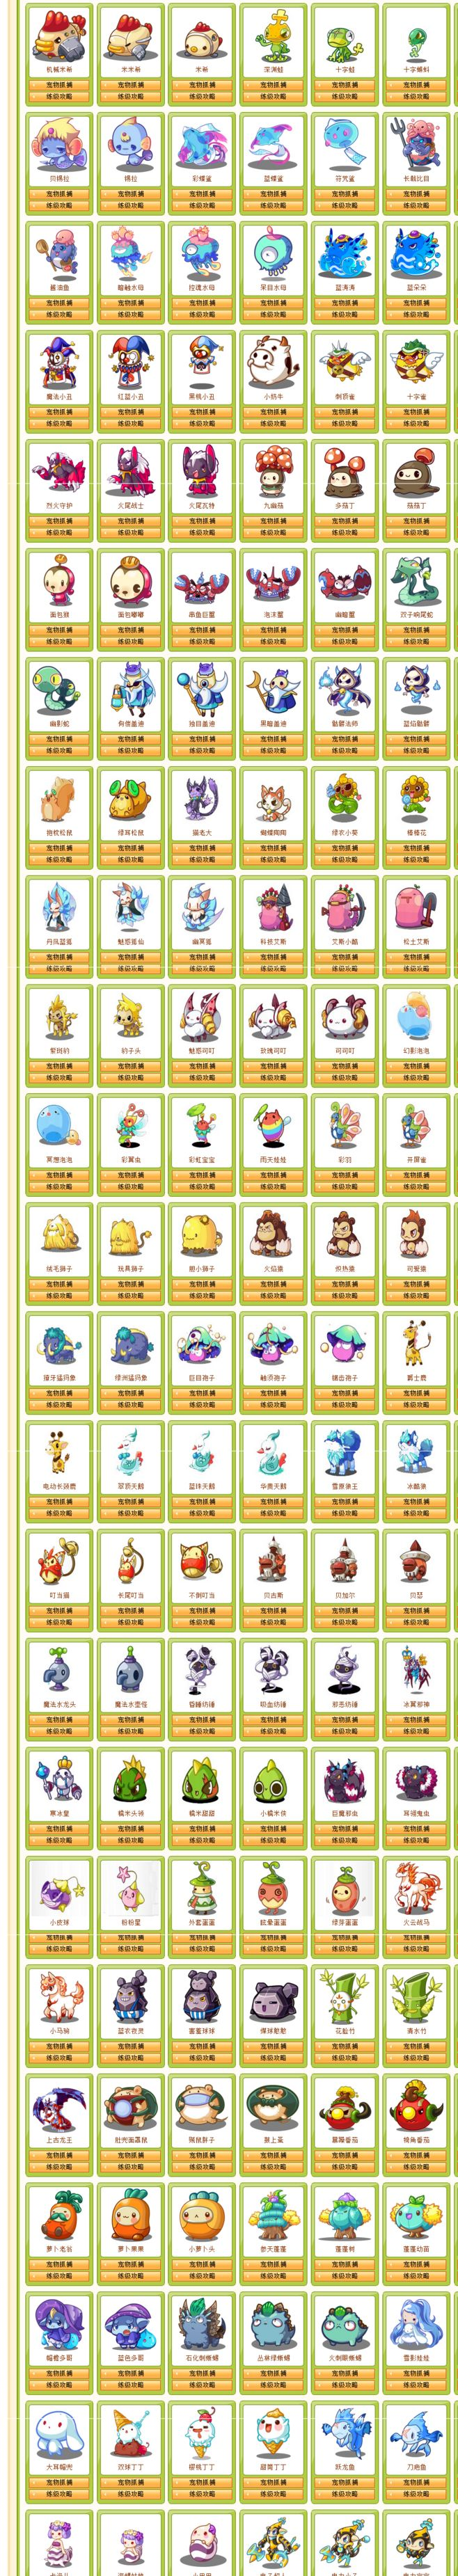 8 best tamagochi images on pinterest banks chart and faeries 1728154466c5a1eb2a9ecbae297e7c7fc6c761892be661 6yufqkfw658 png image 658 3702 pixels scaled 24 geenschuldenfo Image collections